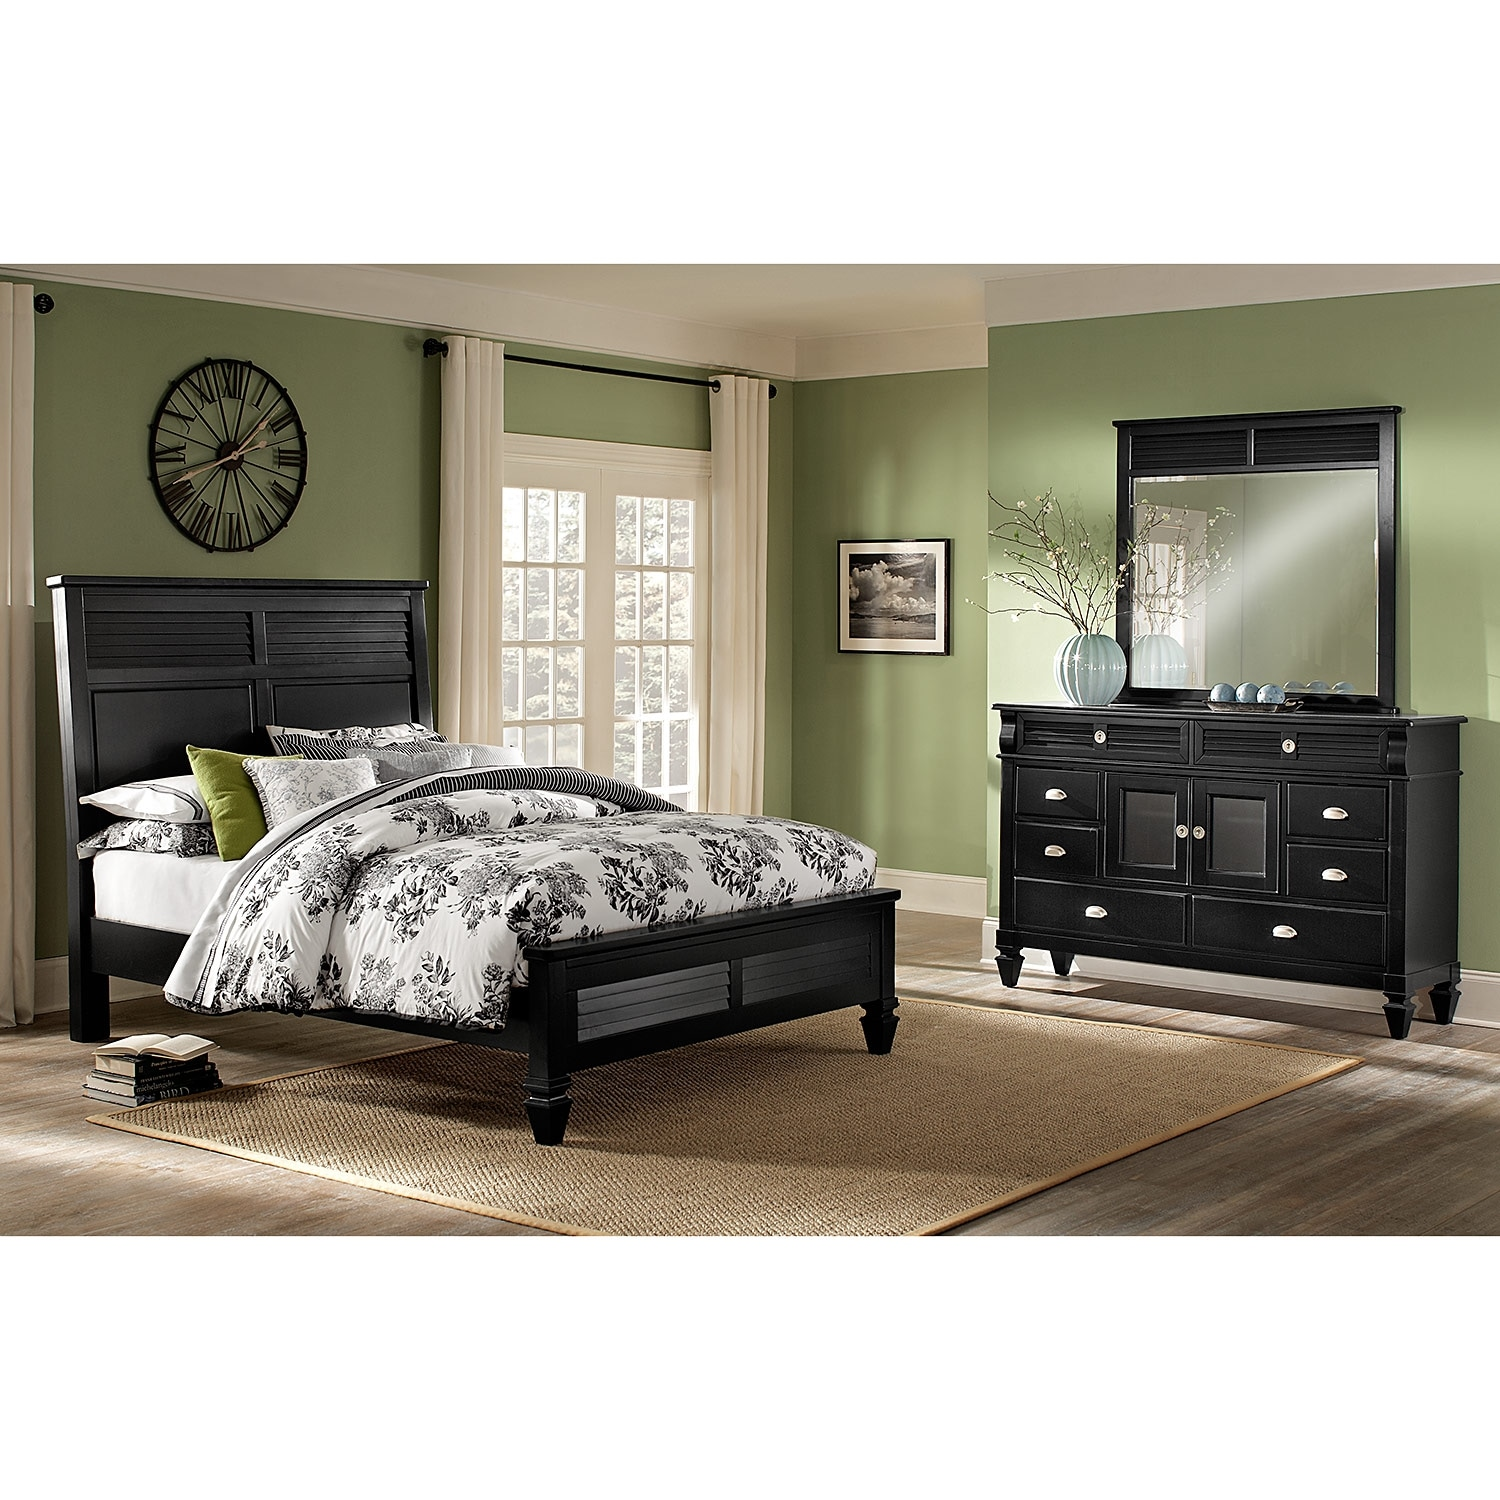 charleston bay black bedroom 5 pc queen bedroom value